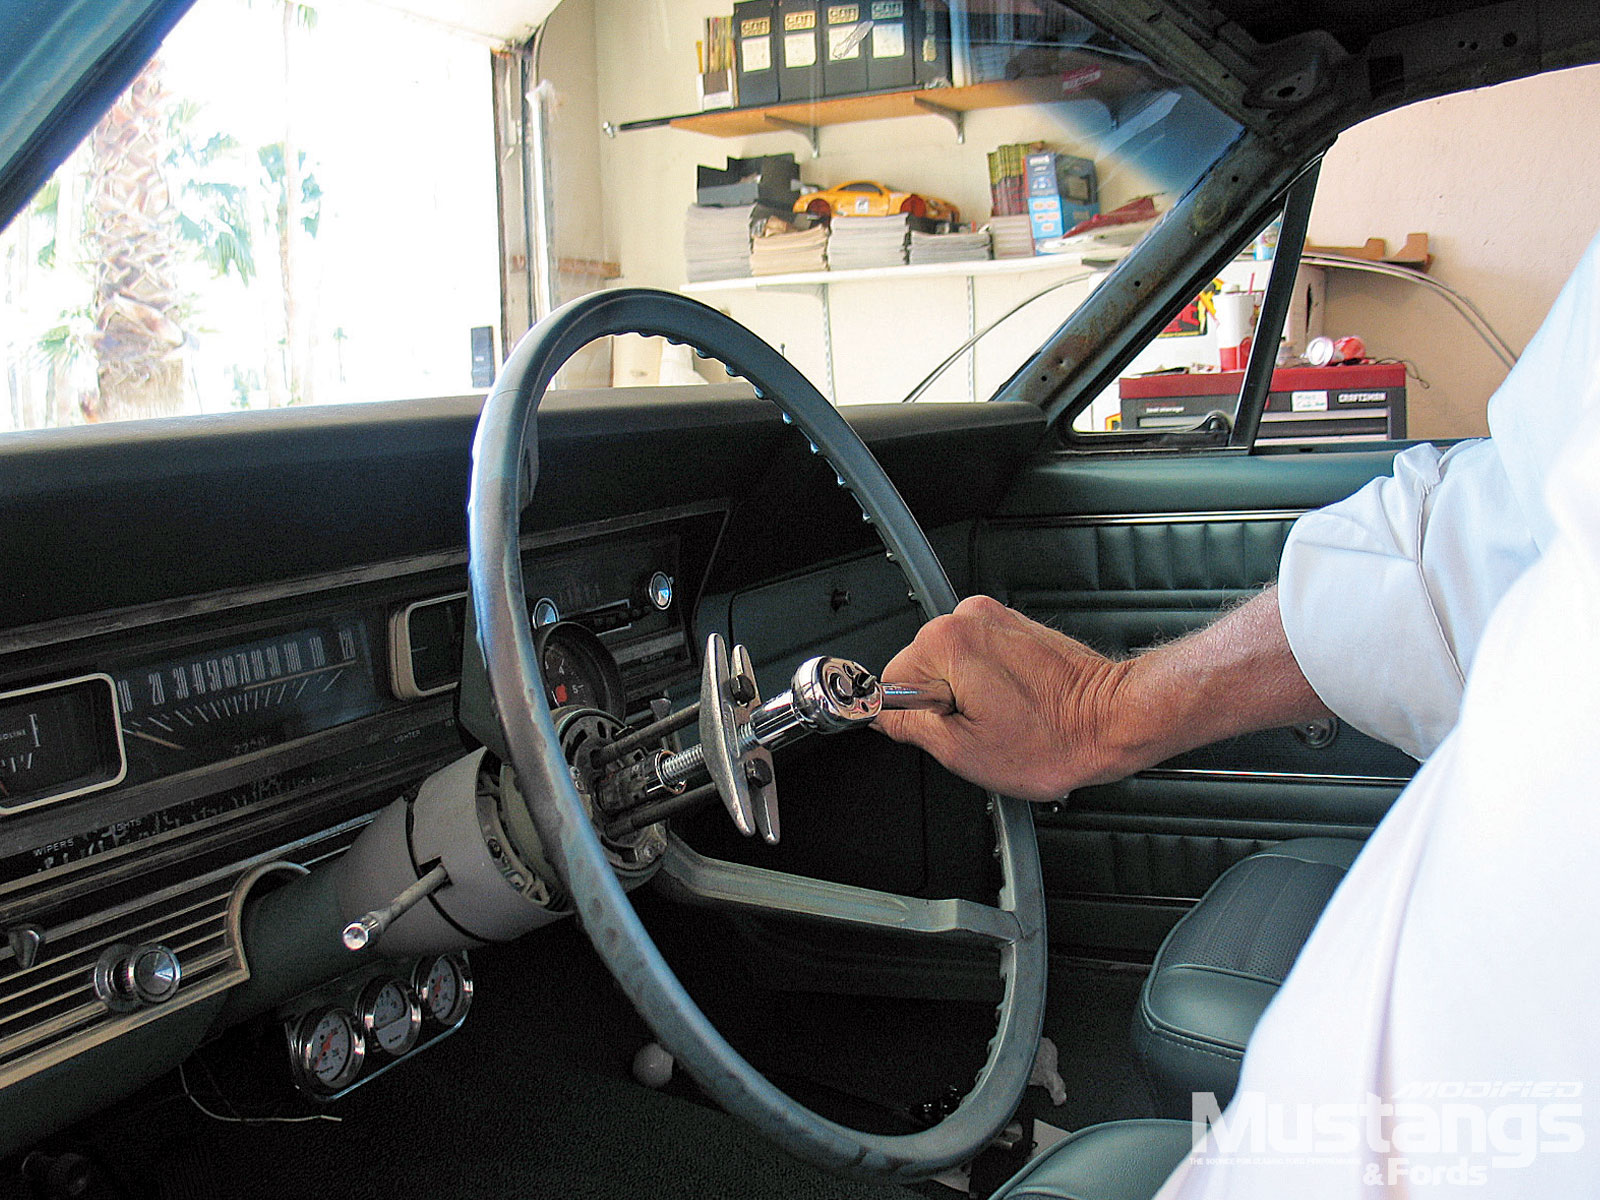 1967 Ford Fairlane Hardtop Remove Steering Wheel